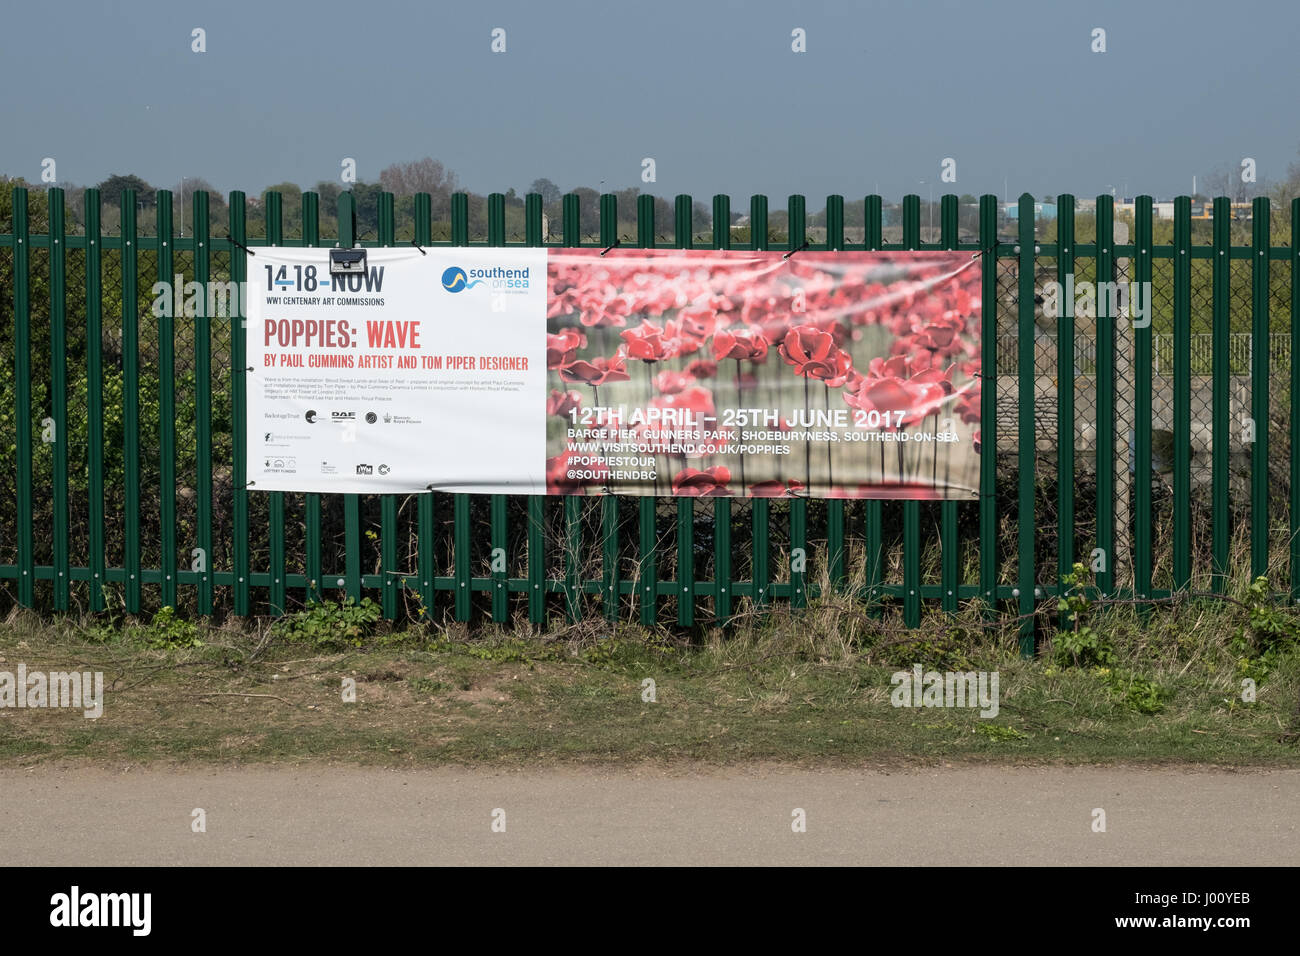 Shoebury barge pier, Essex, UK. 8th April, 2017. The 14-18 NOW Poppies: Wave sculpture by artist Paul Cummins and - Stock Image